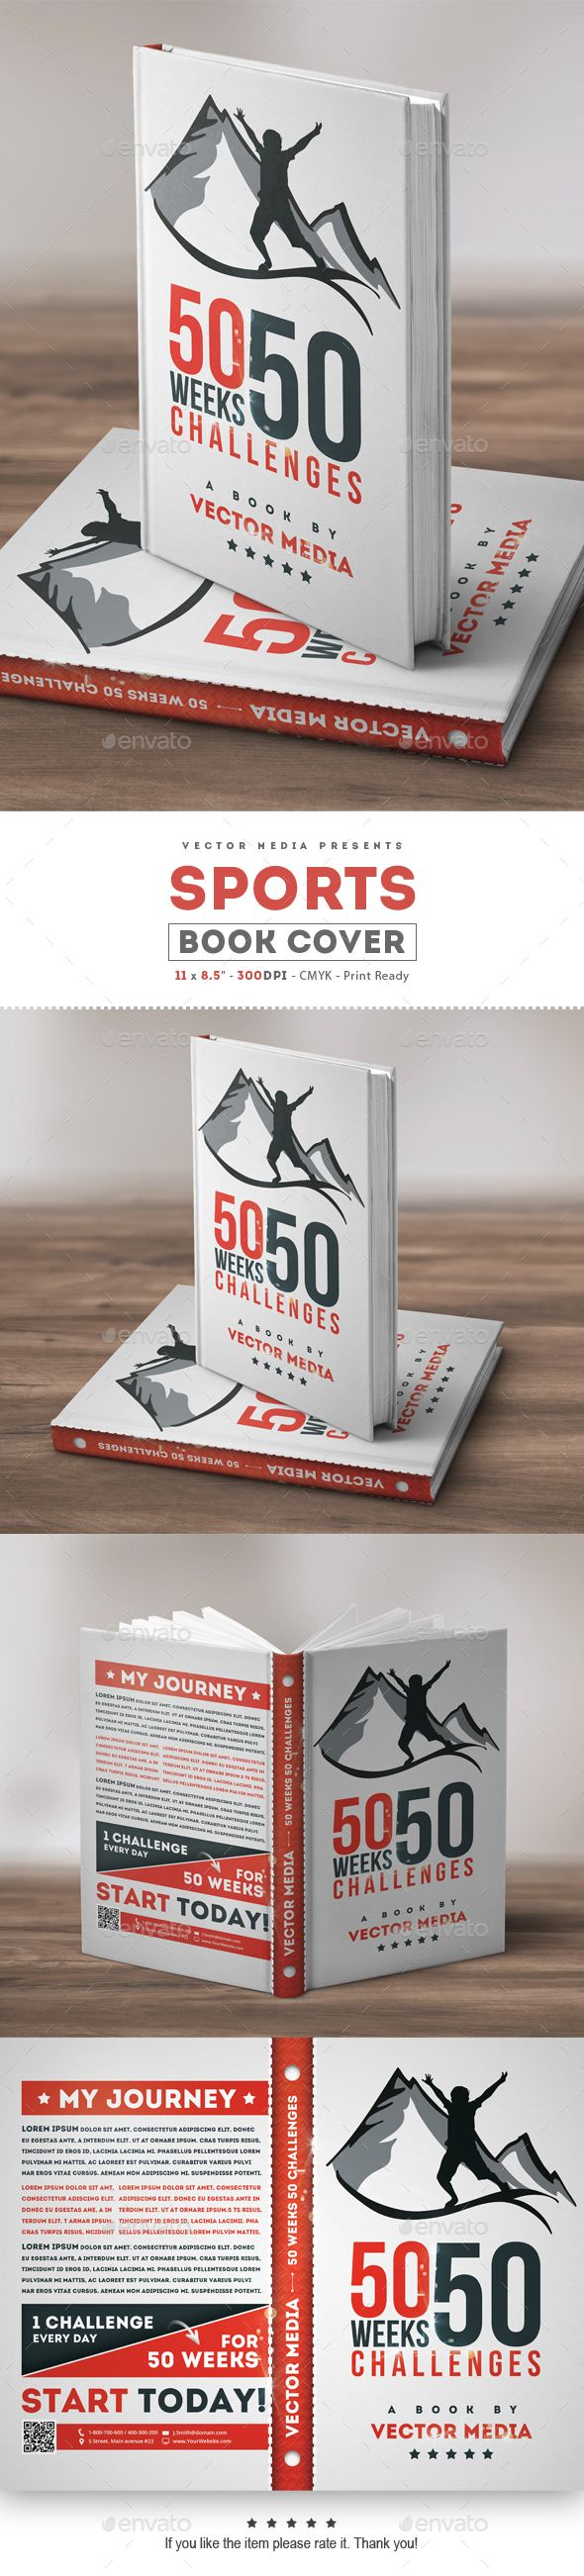 sports book cover book covers template and books